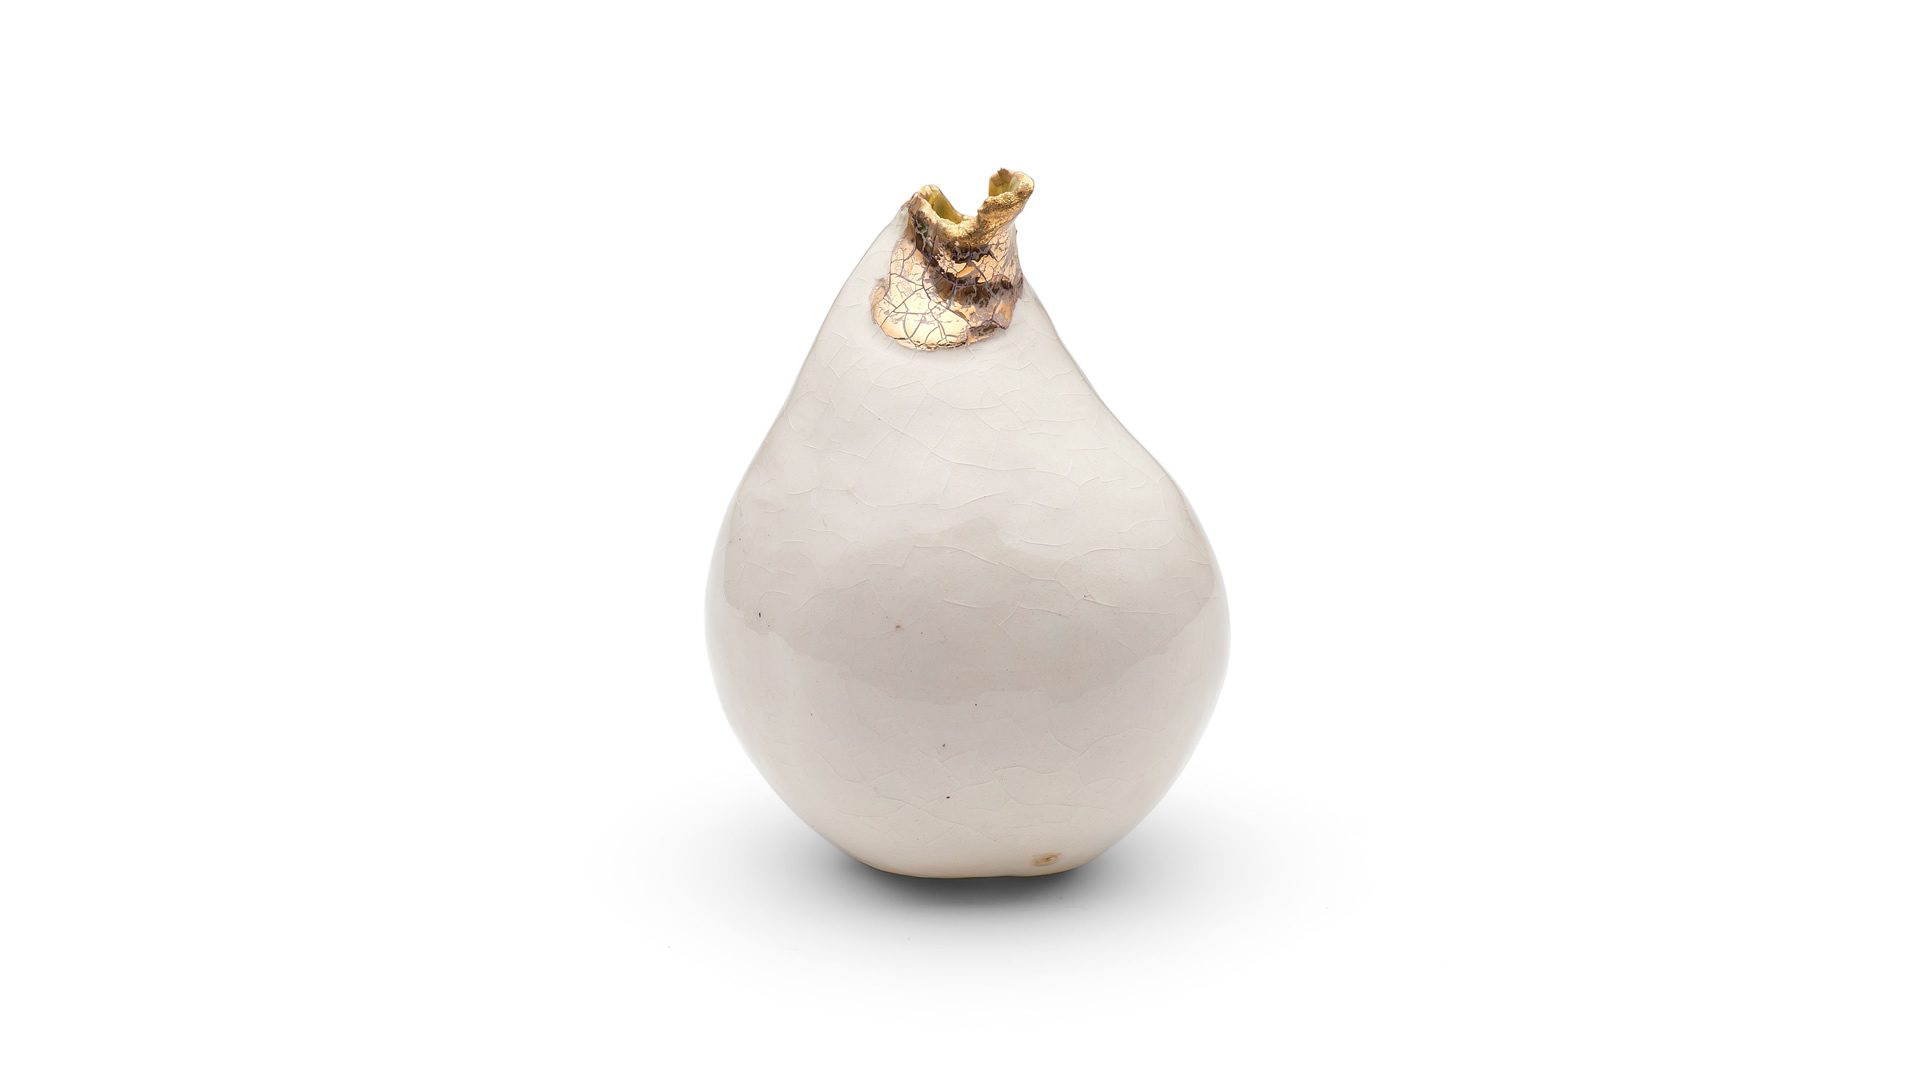 Ceramic pear with Gold Lustre